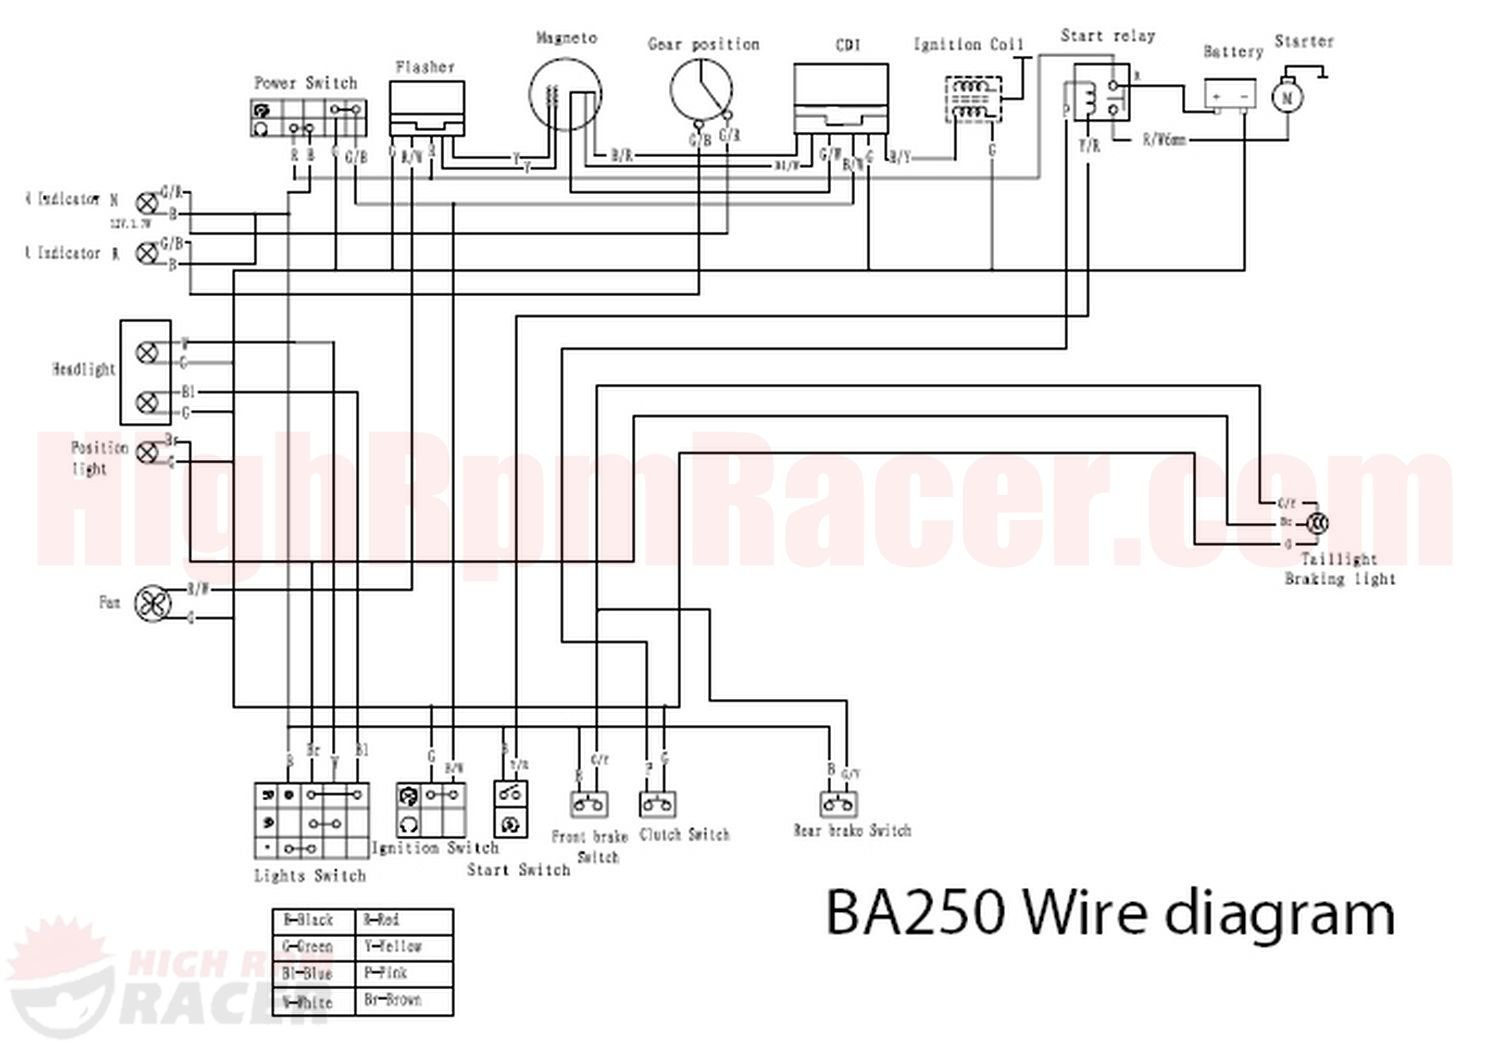 baja 250 atv wiring diagrams 2 3 tridonicsignage de \u2022baja 250 atv wiring diagram wiring schematic diagram rh 147 twizer co baja wilderness trail 250